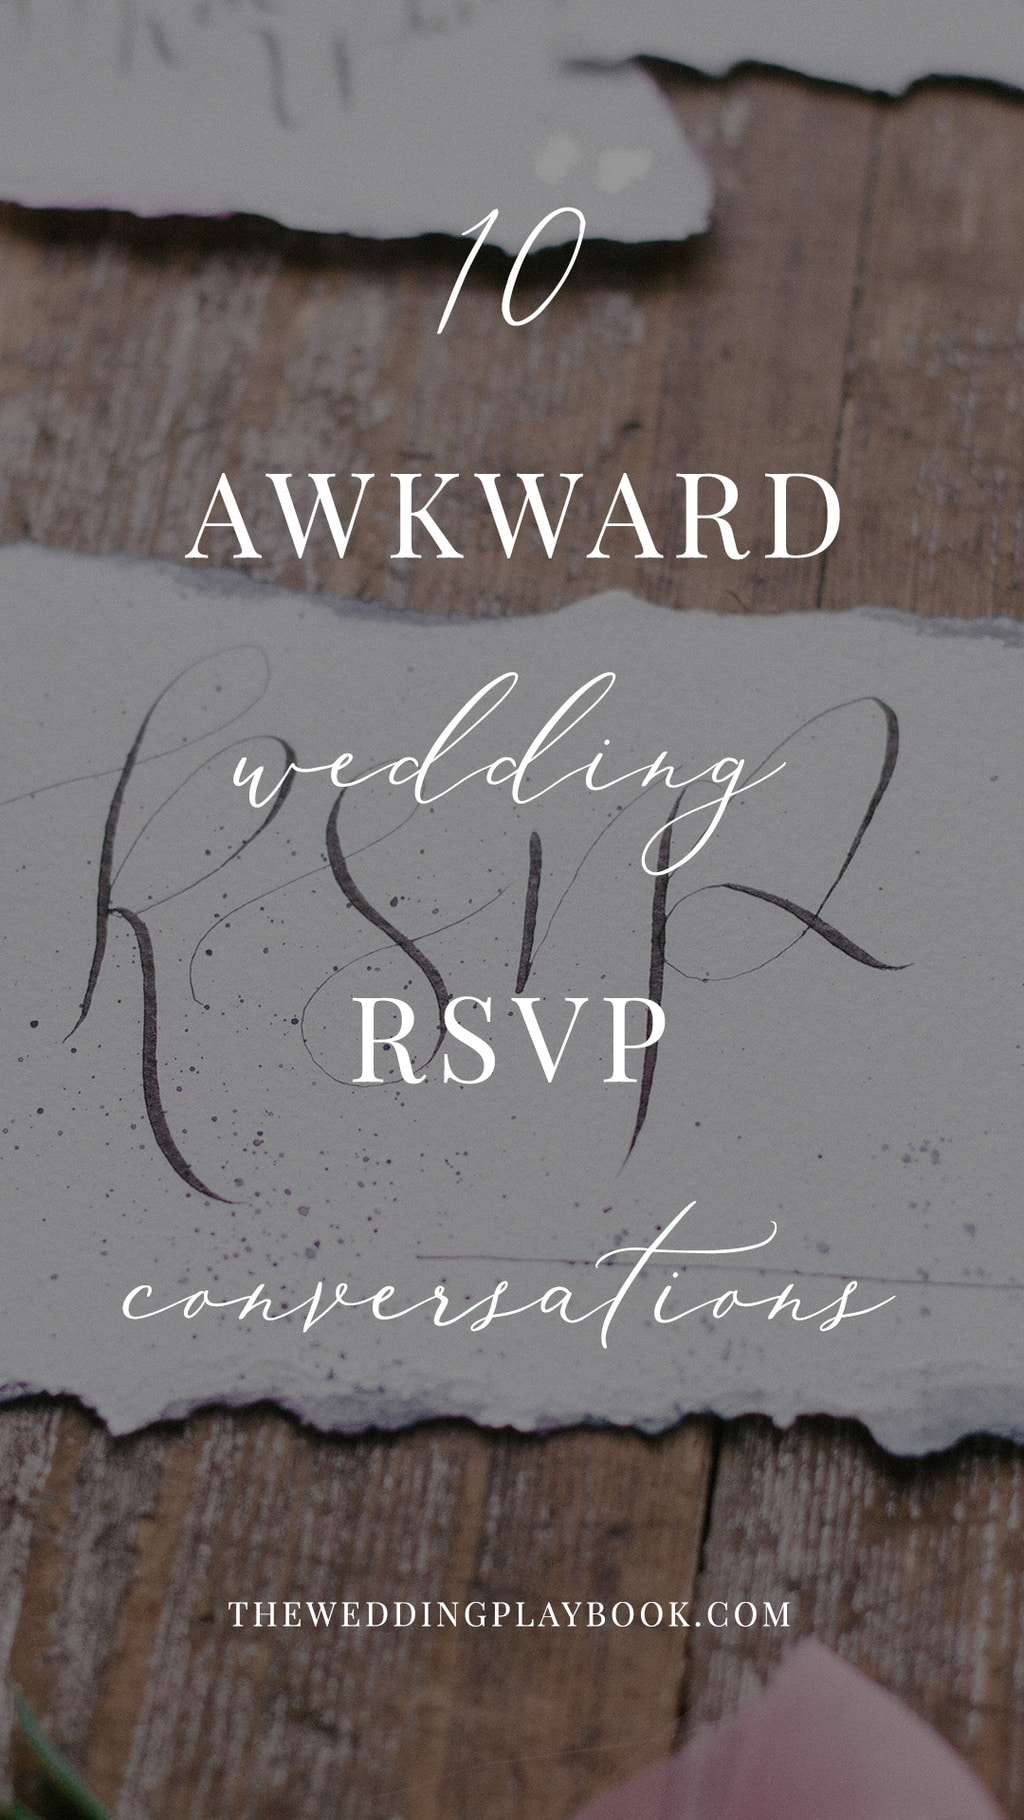 Top 10 Awkward Wedding RSVP Conversations